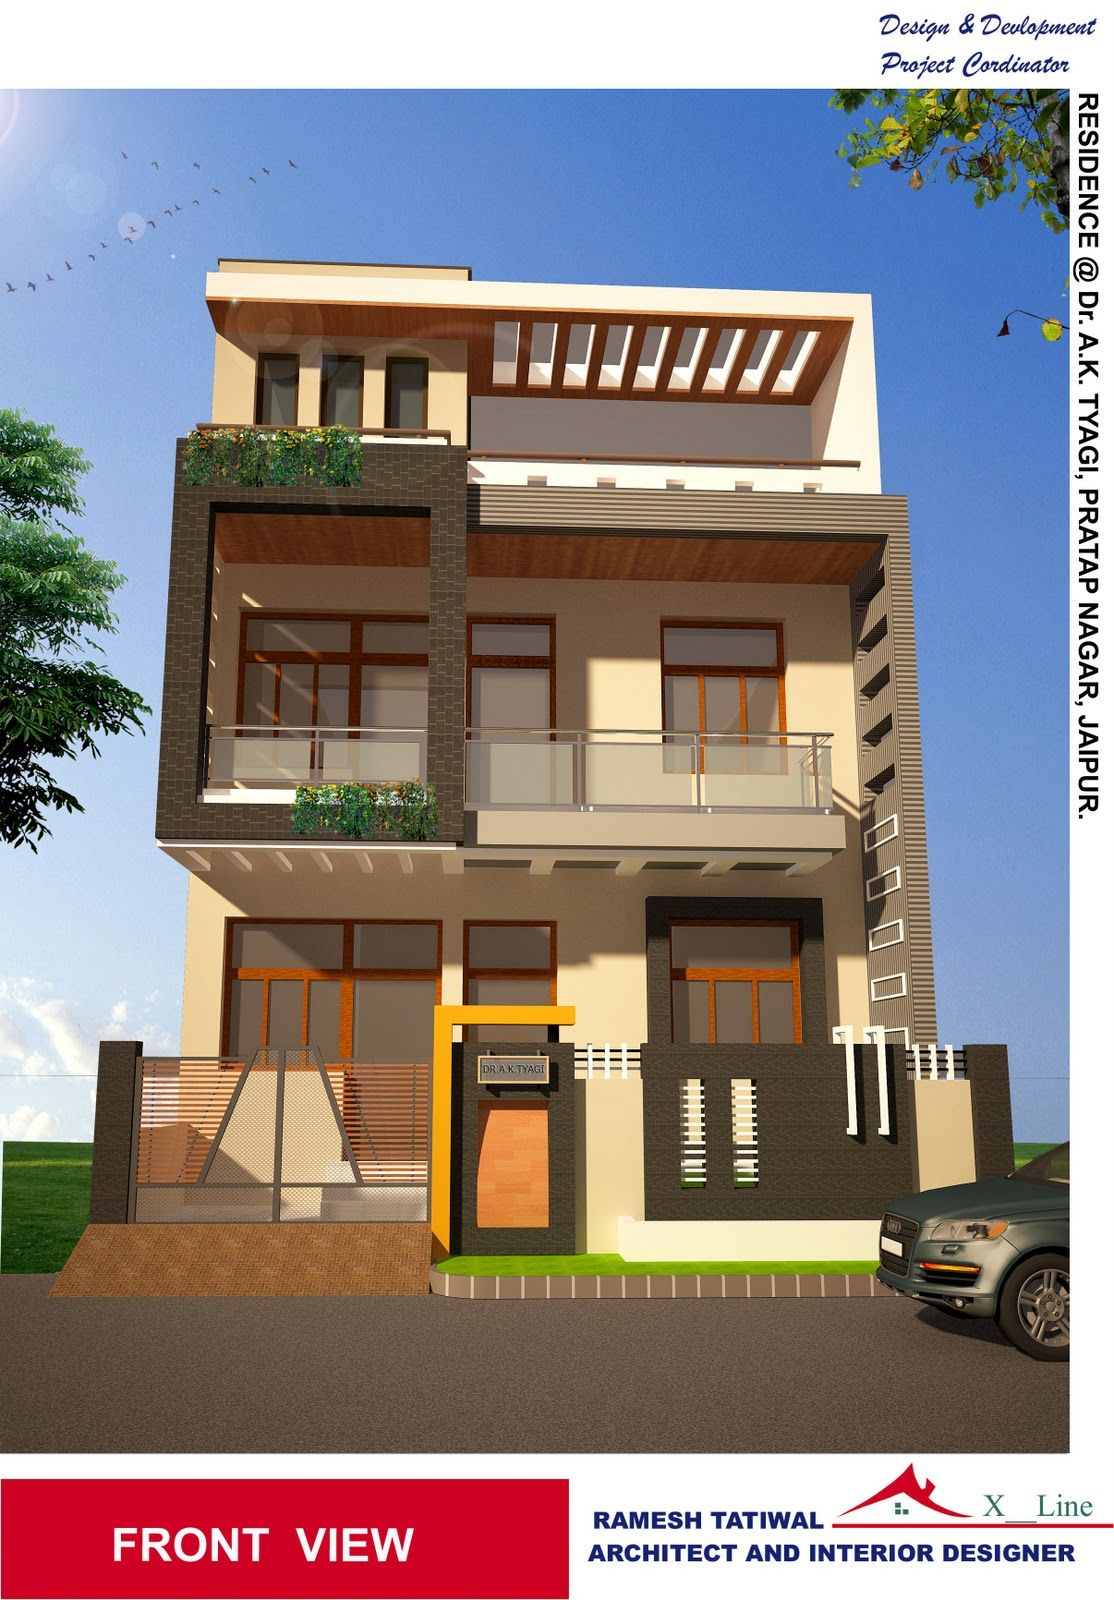 Housedesigns modern indian home architecture design from Pictures of exterior home designs in india